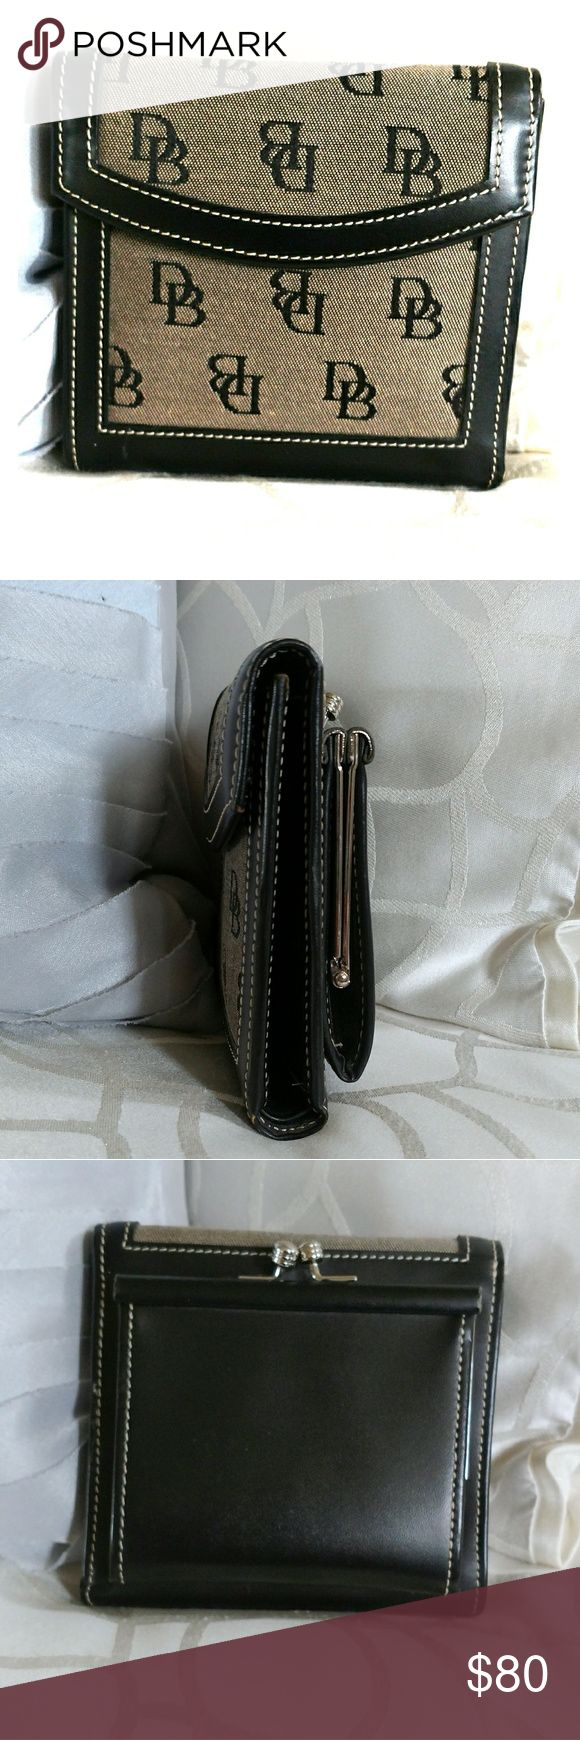 """Vintage DOONEY and BOURKE Black wallet NWOT Dooney & Bourke wallet.  Black and grey.  Please note: refer to first photo. Bottom left. Very faint mark.  Probably 1/8"""" and very light but I want to point it out. Please refer to photo with inside coin area. I'm not sure what happened there.    This item is new and has not been used.  Comes from a smoke-free home. Please ask all questions prior to purchasing. Dooney & Bourke Bags Wallets"""